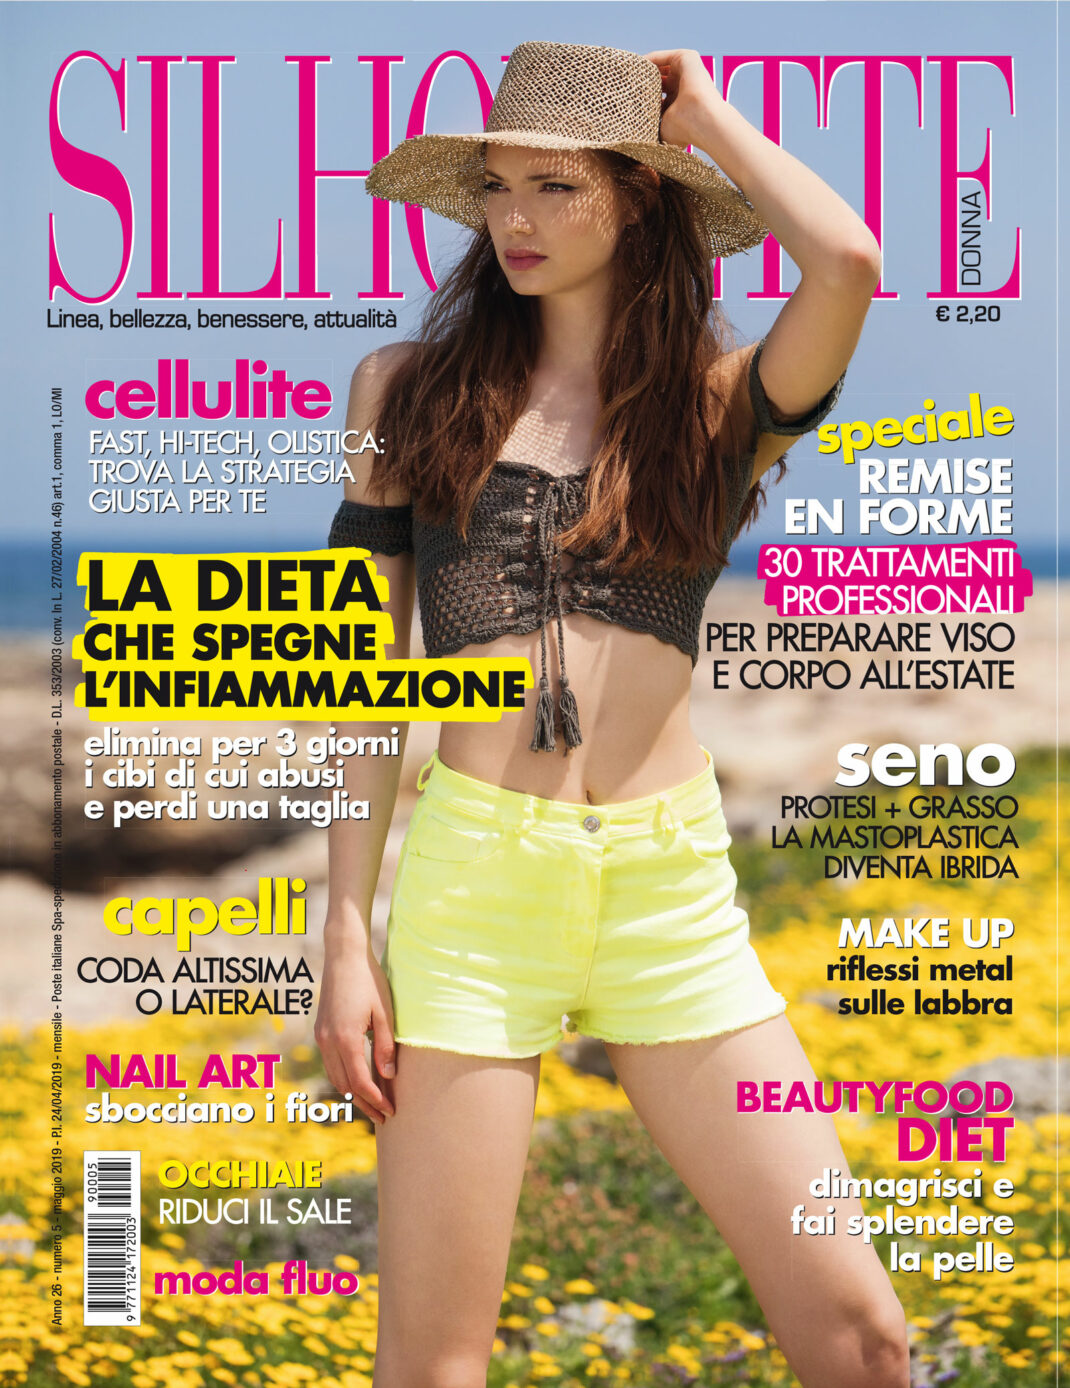 COVER-SLD05